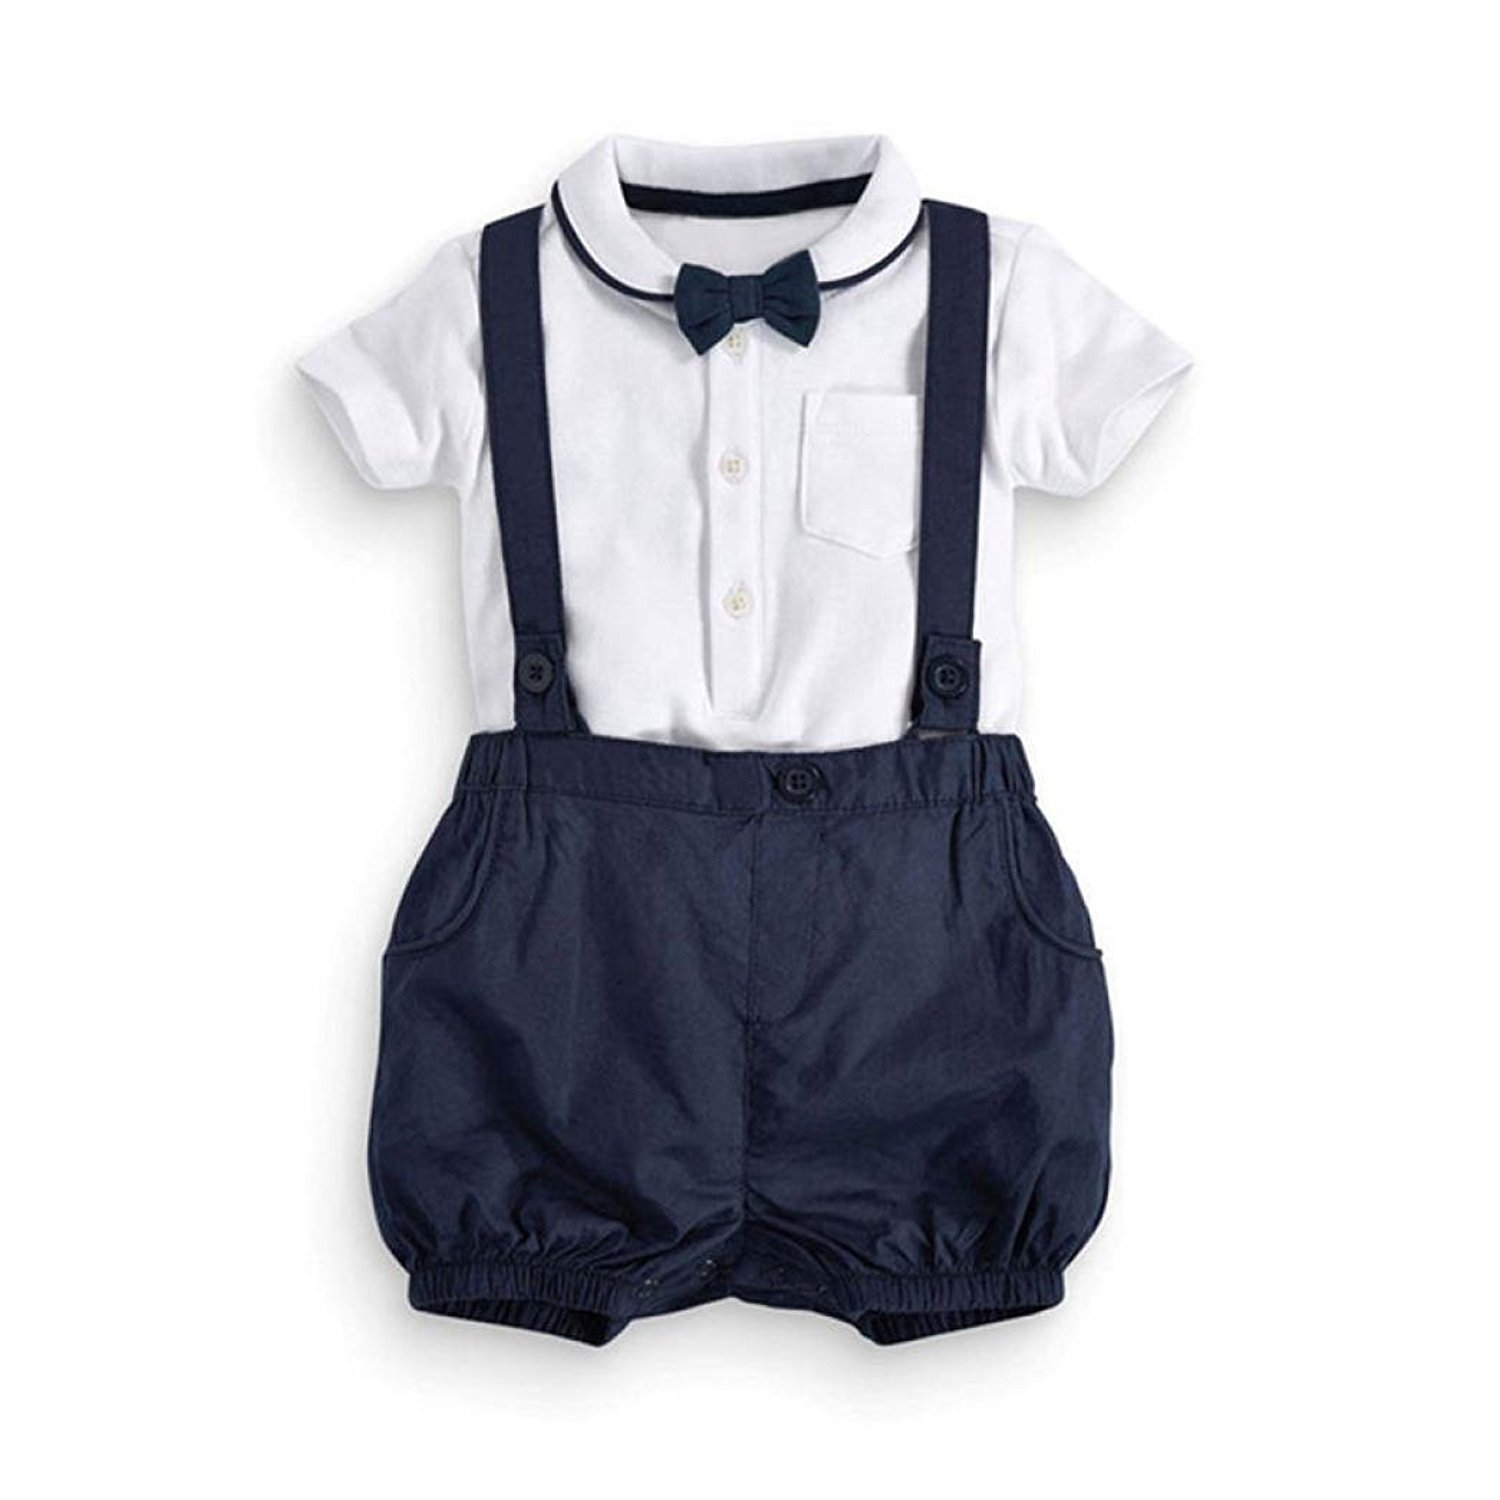 Kingko 0~24 Months 2pcs Toddler Baby Infant Boys Outfits Bow Tie+T-Shirt+Strap Kids Clothes Set